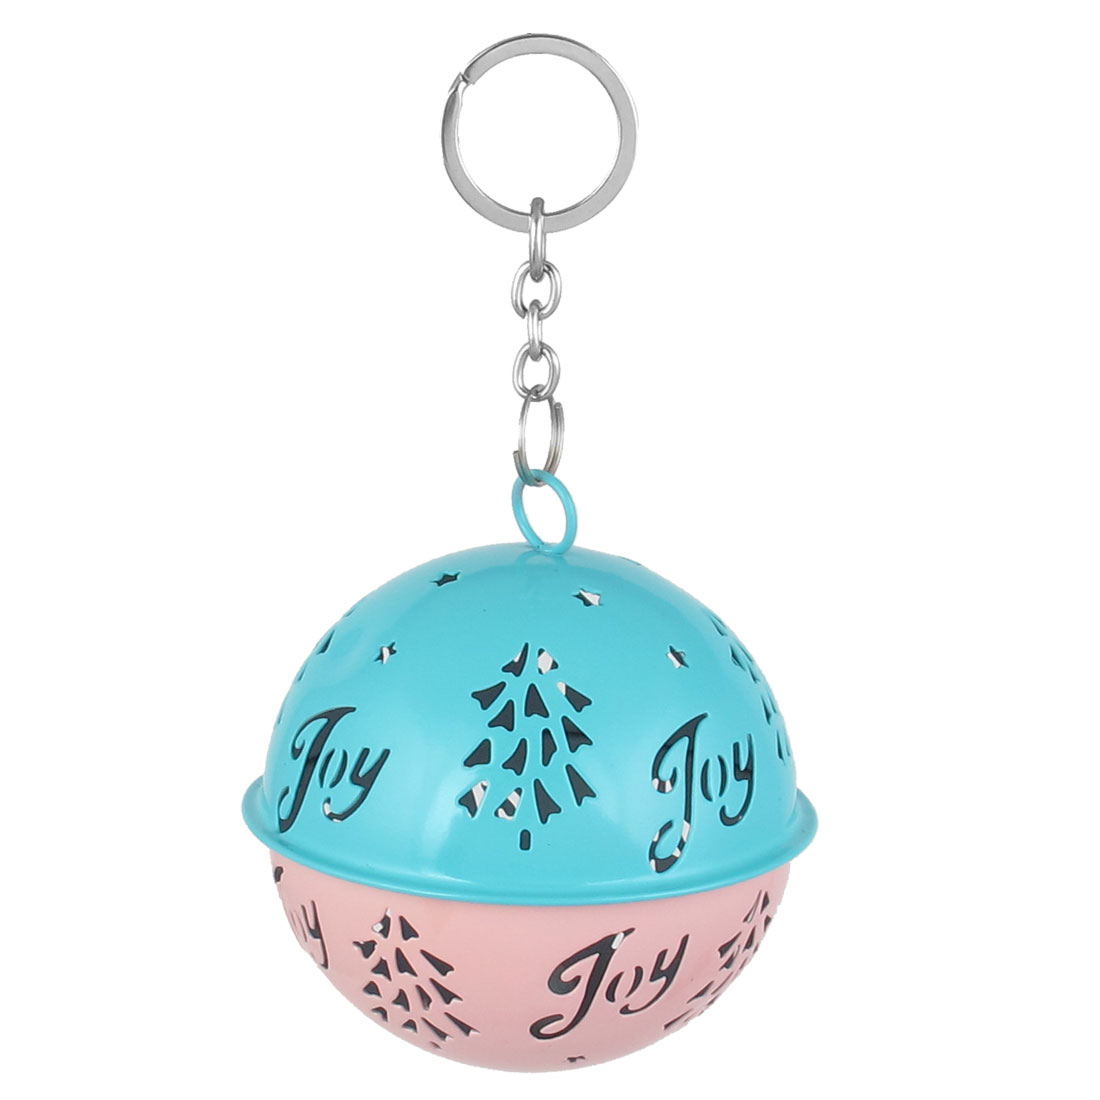 85mm Diameter Blue Pink Metal Christmas Tree Detail Ball Shape Keychain Hollow Out Design Jingle Ring Bell Ornament for Celebration Party Case